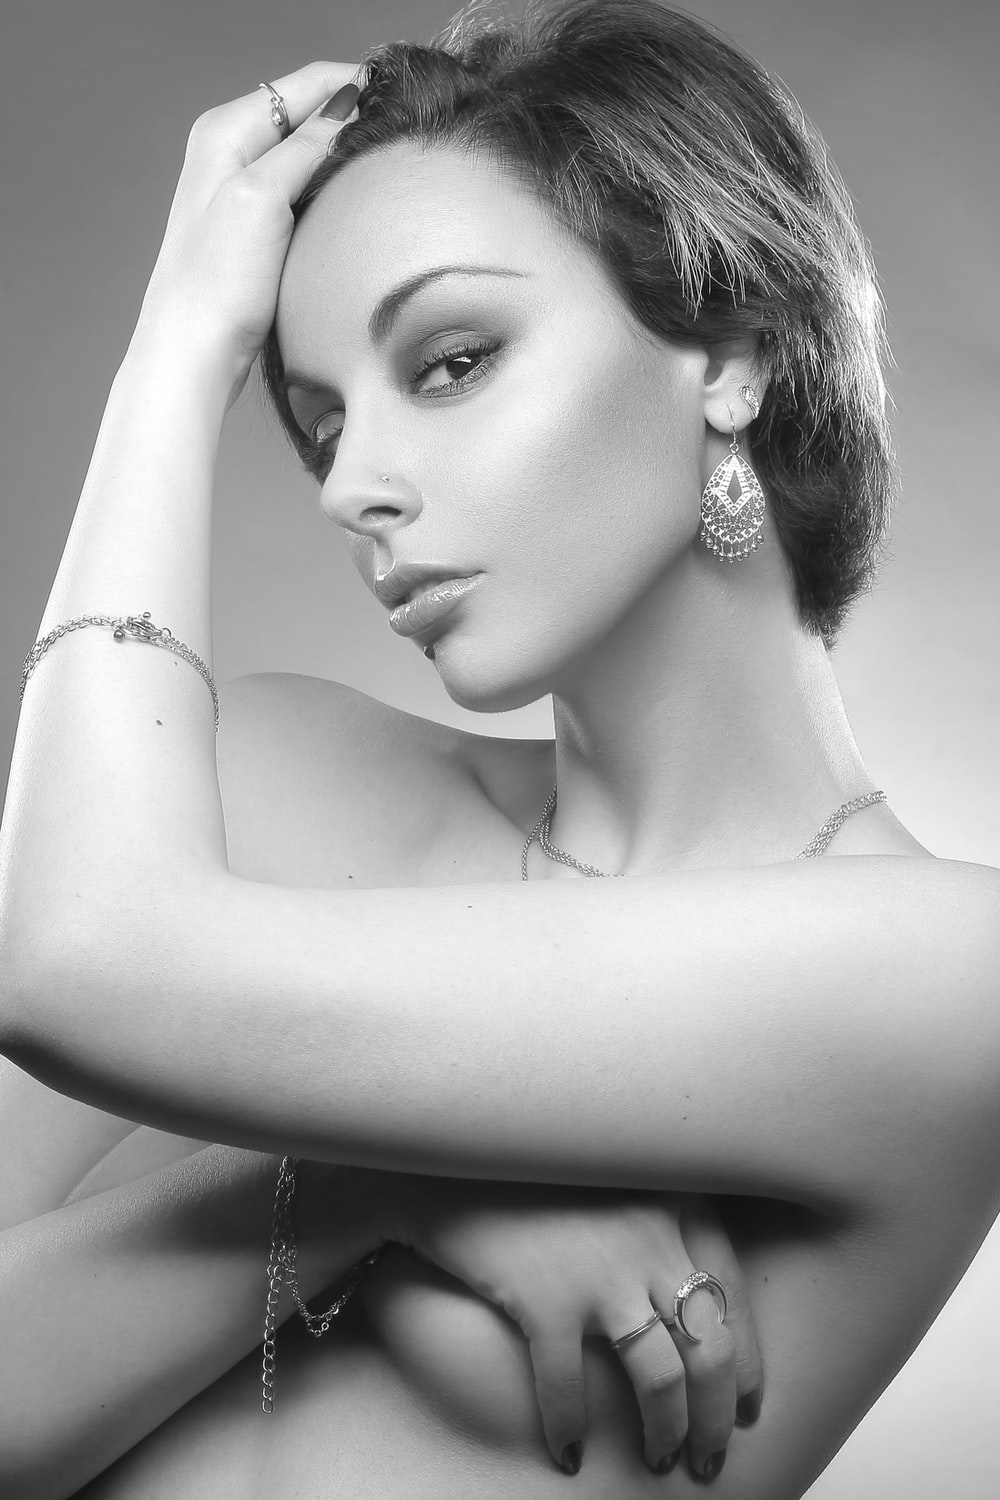 grayscale photography of topless woman covering breast and one hand on hair